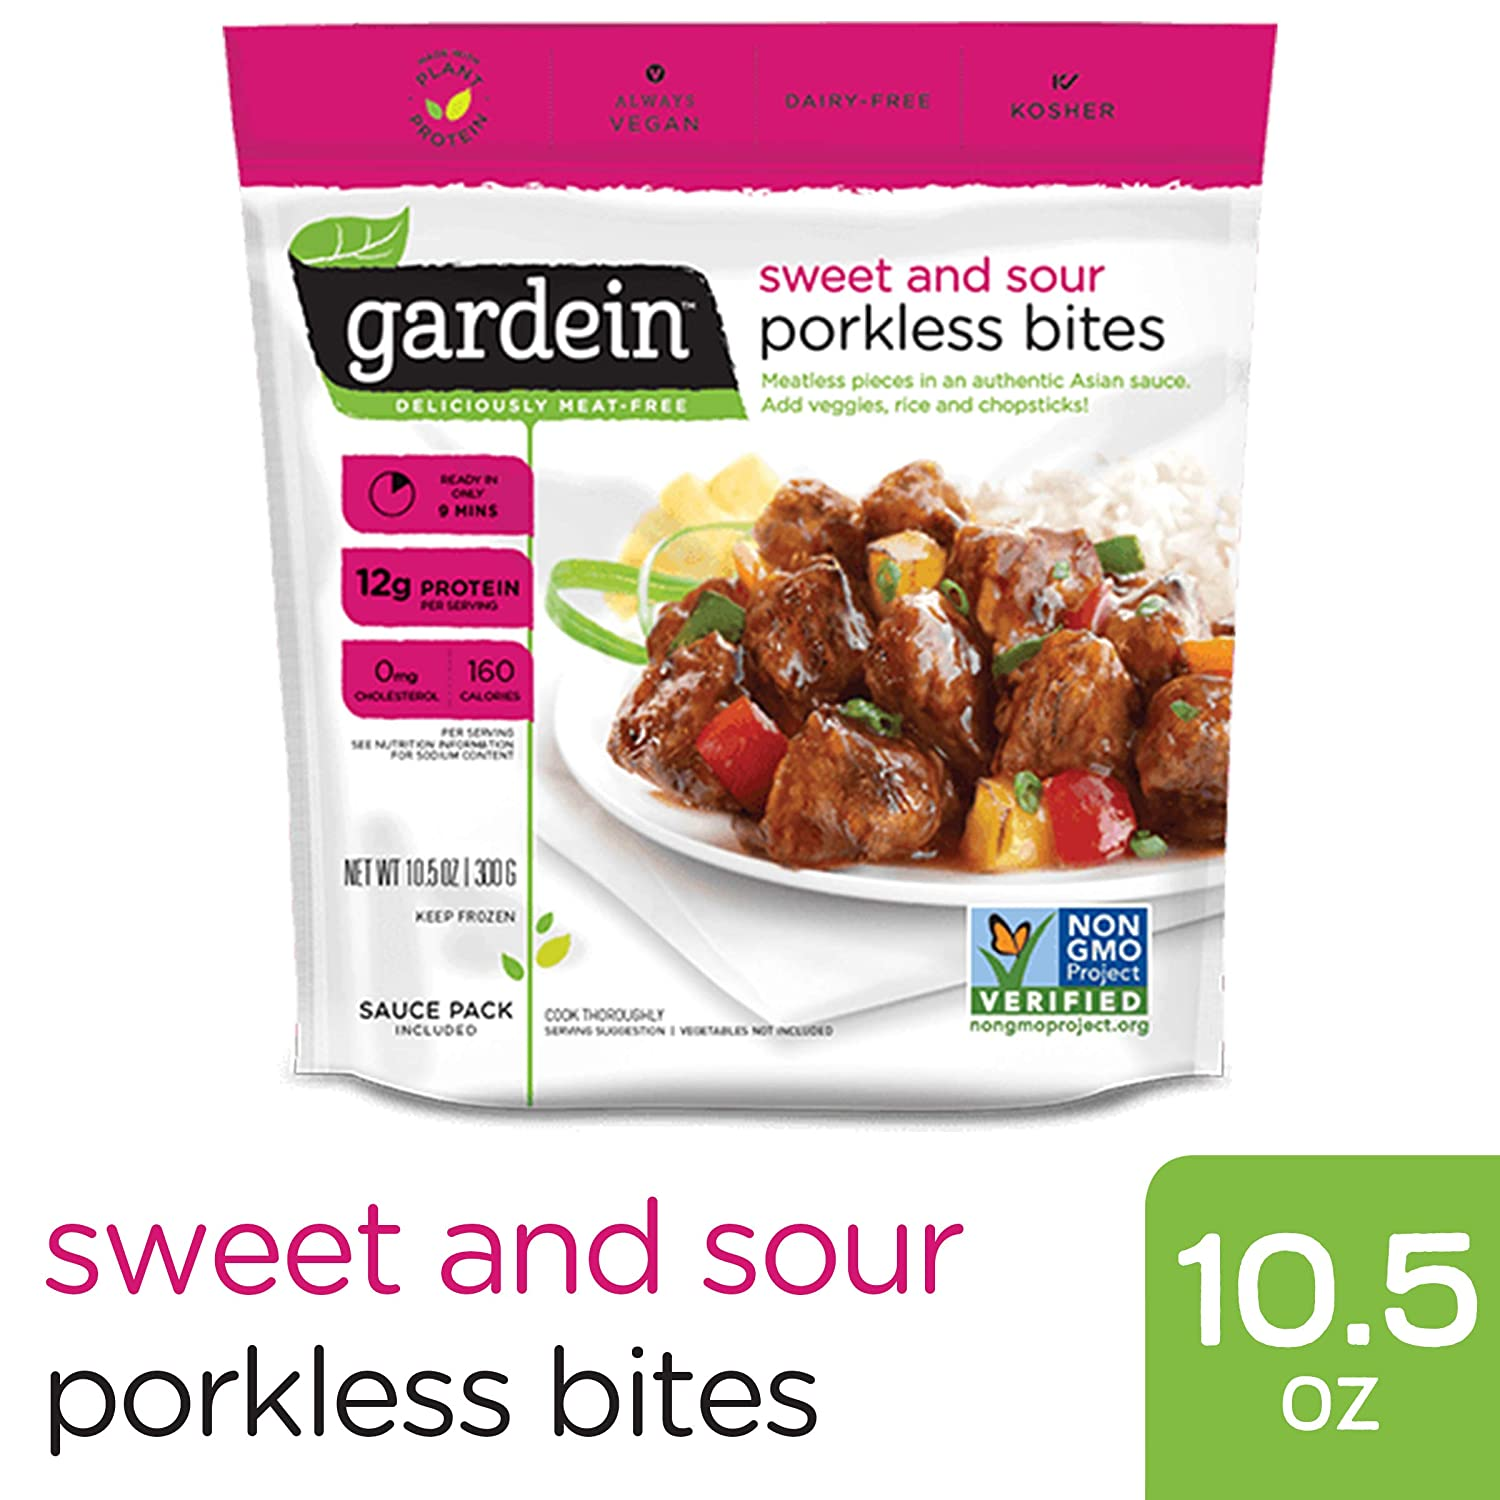 Gardein Sweet and Sour Porkless Bites, Meatless Protein Packed Meal with Sauce, Ready in 8 Minutes, Contains Sauce Packet, 10.5 Ounces (Frozen)